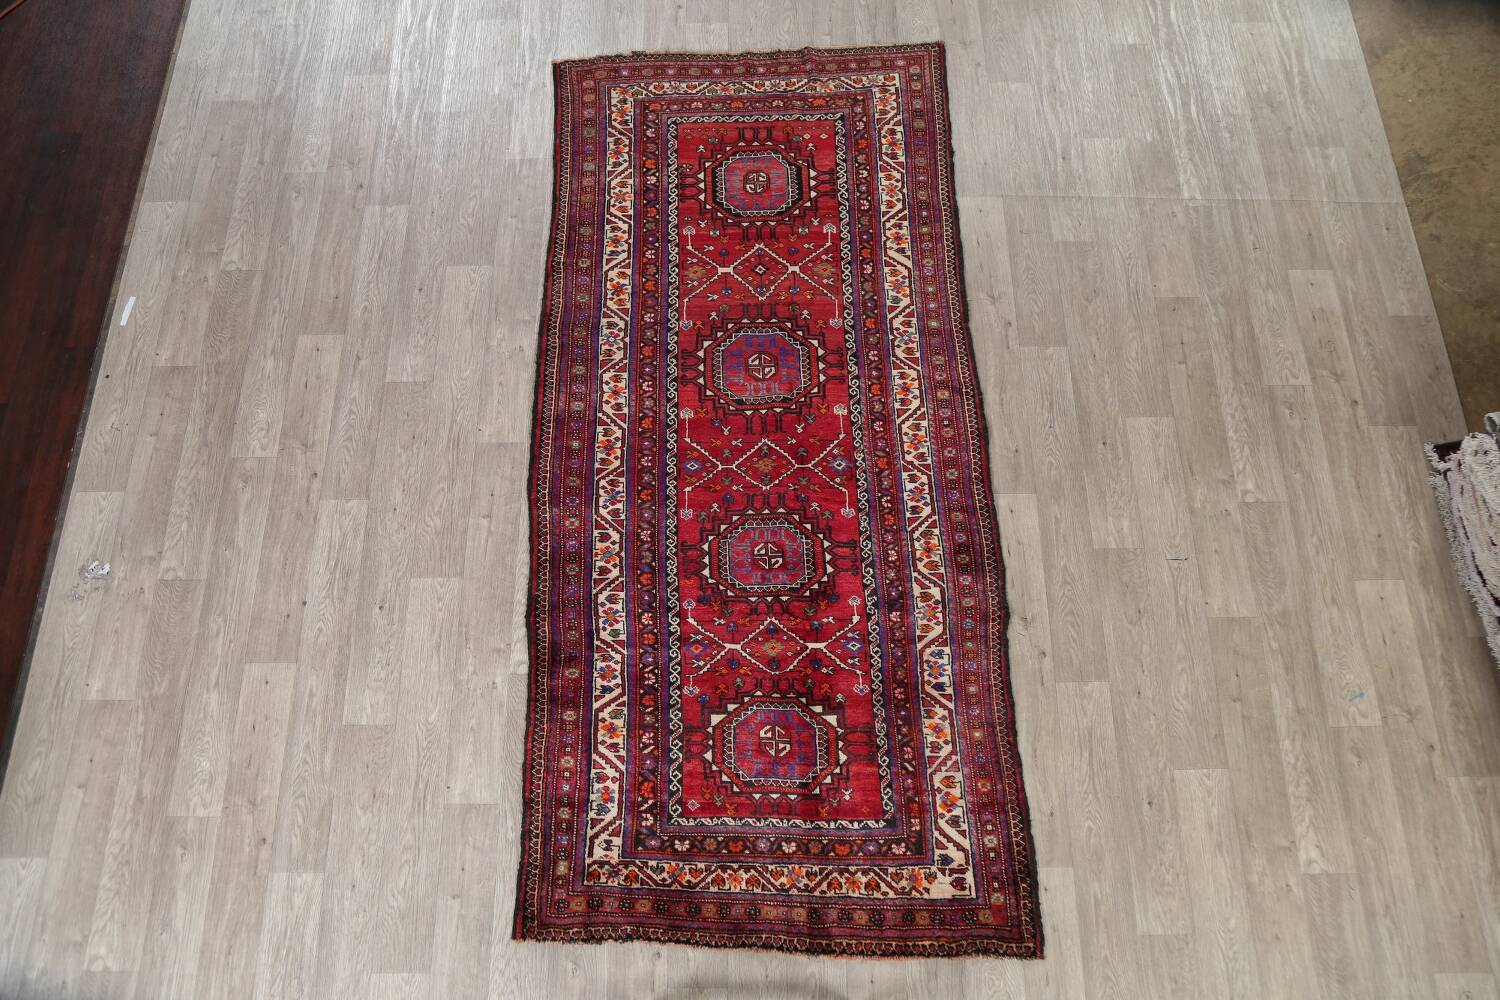 Vintage Geometric Red Malayer Persian Runner Rug 4x9 image 2